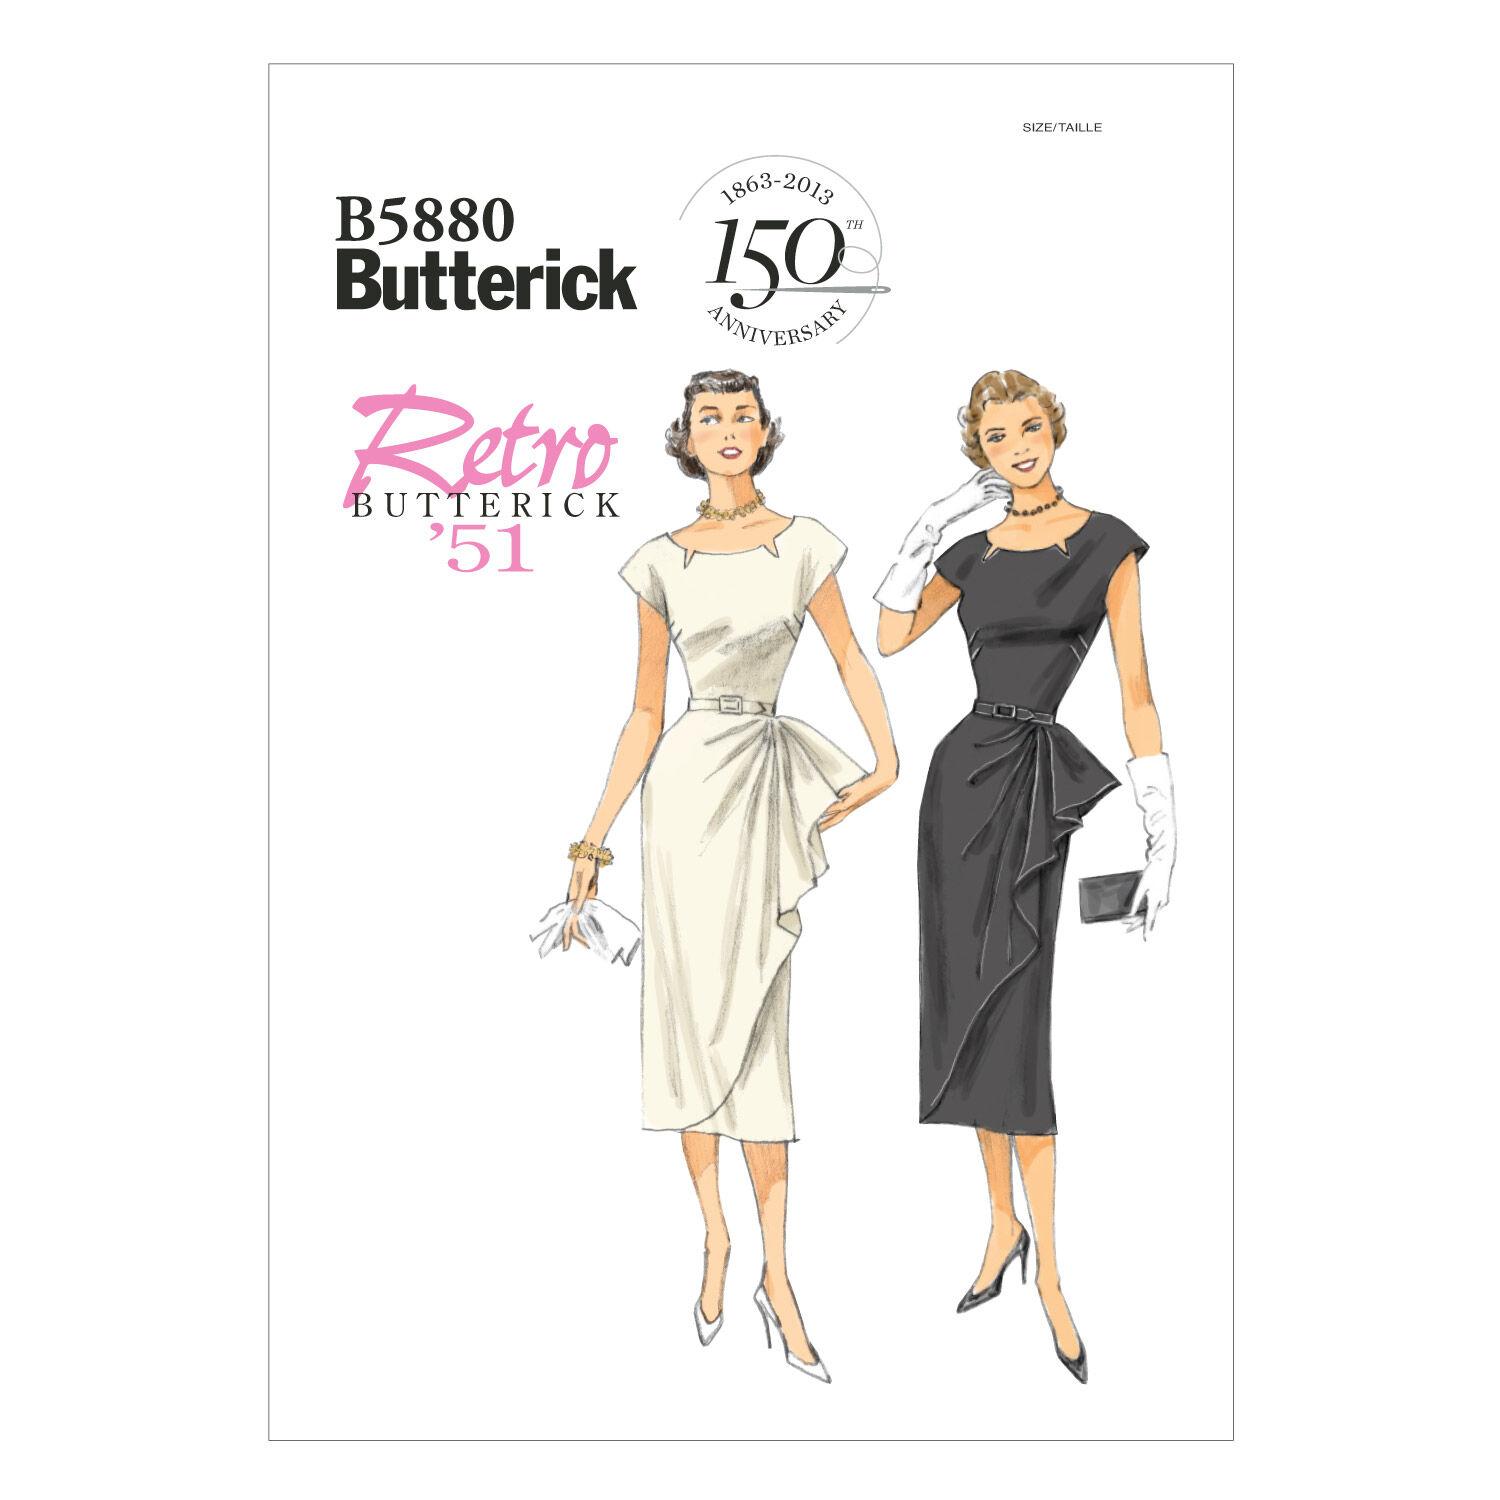 1950s Sewing Patterns | Dresses, Skirts, Tops, Mens 1951 Butterick Misses Dress - B5880 $11.97 AT vintagedancer.com